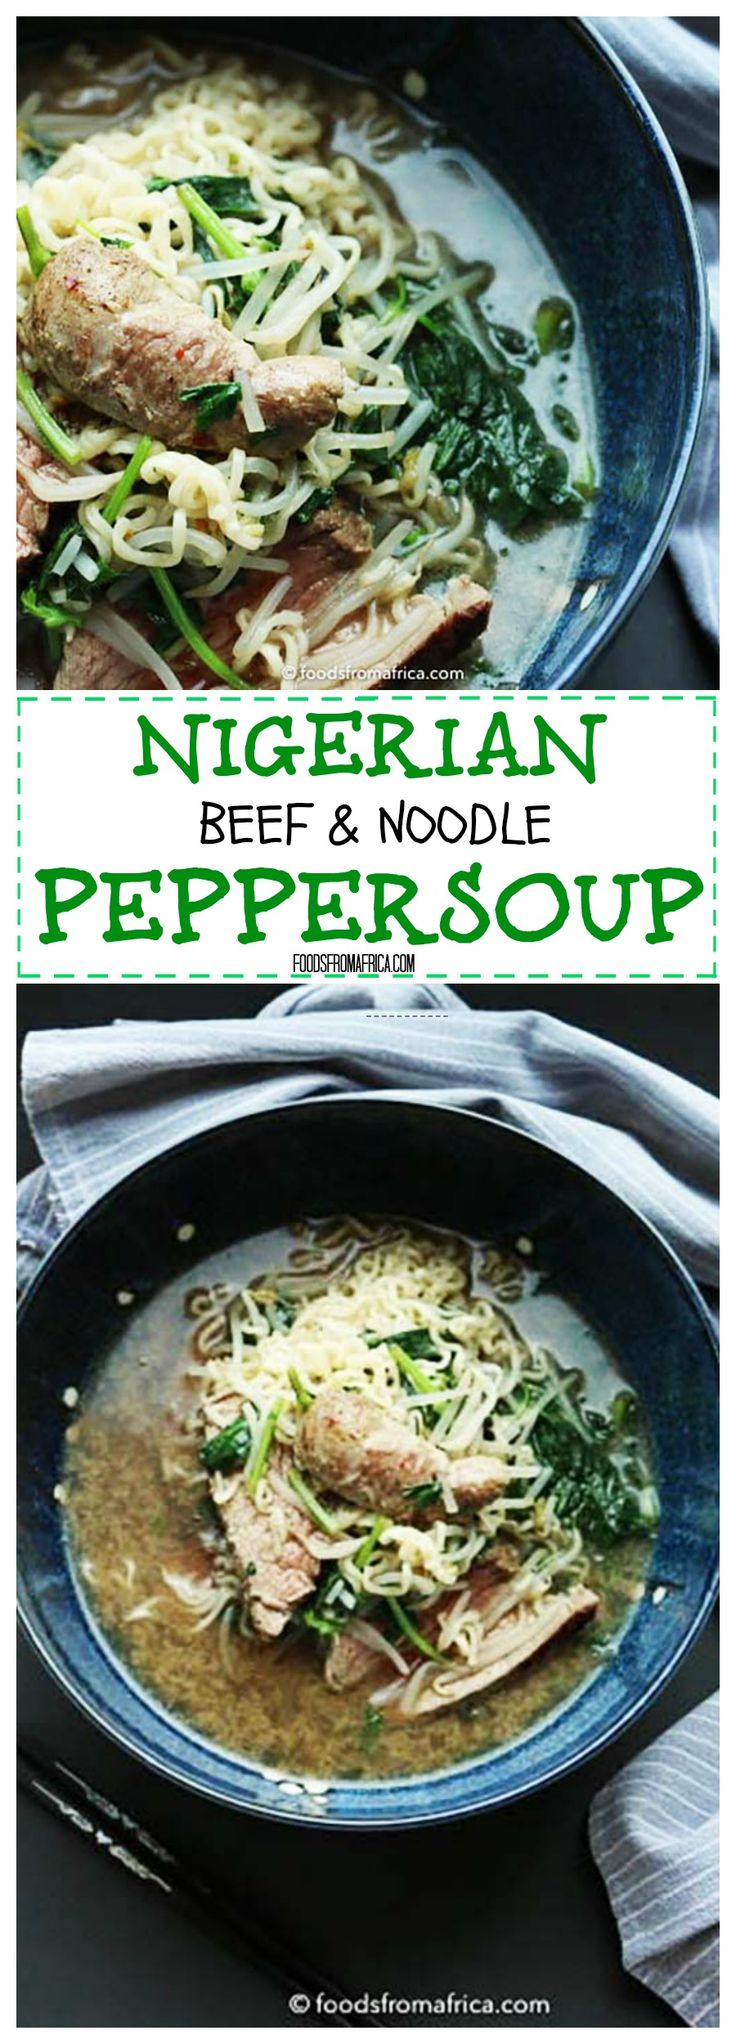 African recipes easy quick